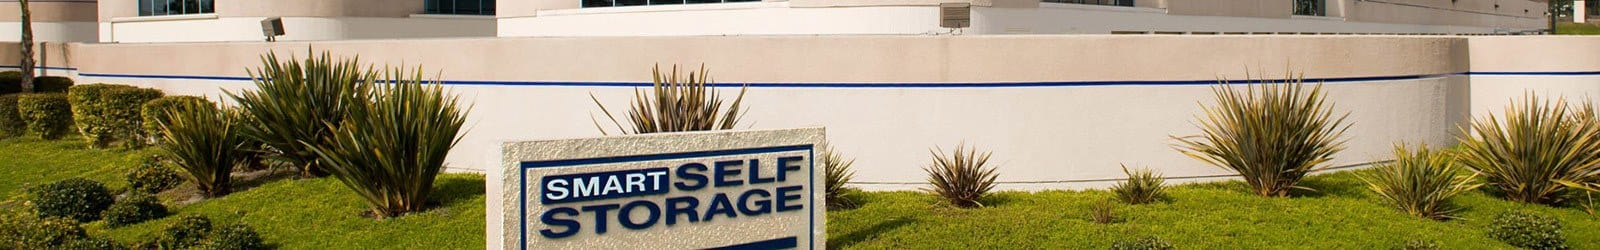 Smart Self Storage of Eastlake offer Climate Controlled Storage Options